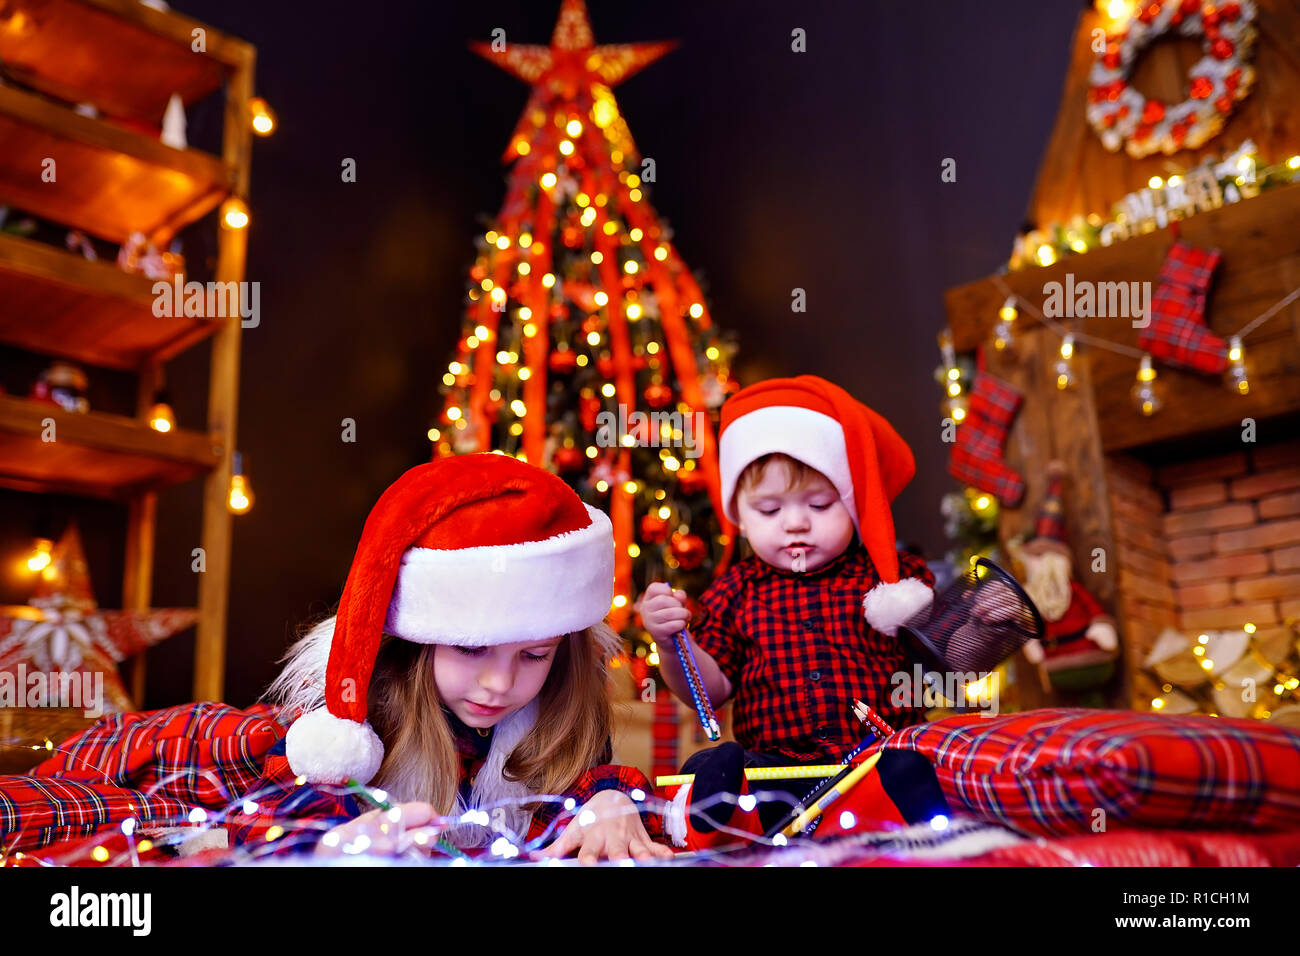 Charming girl in Santa hat lying on the floor and writes letter, draws with pencil and her little brother who interferes with her, plays with pencils in warm room with garlands, lights - Stock Image